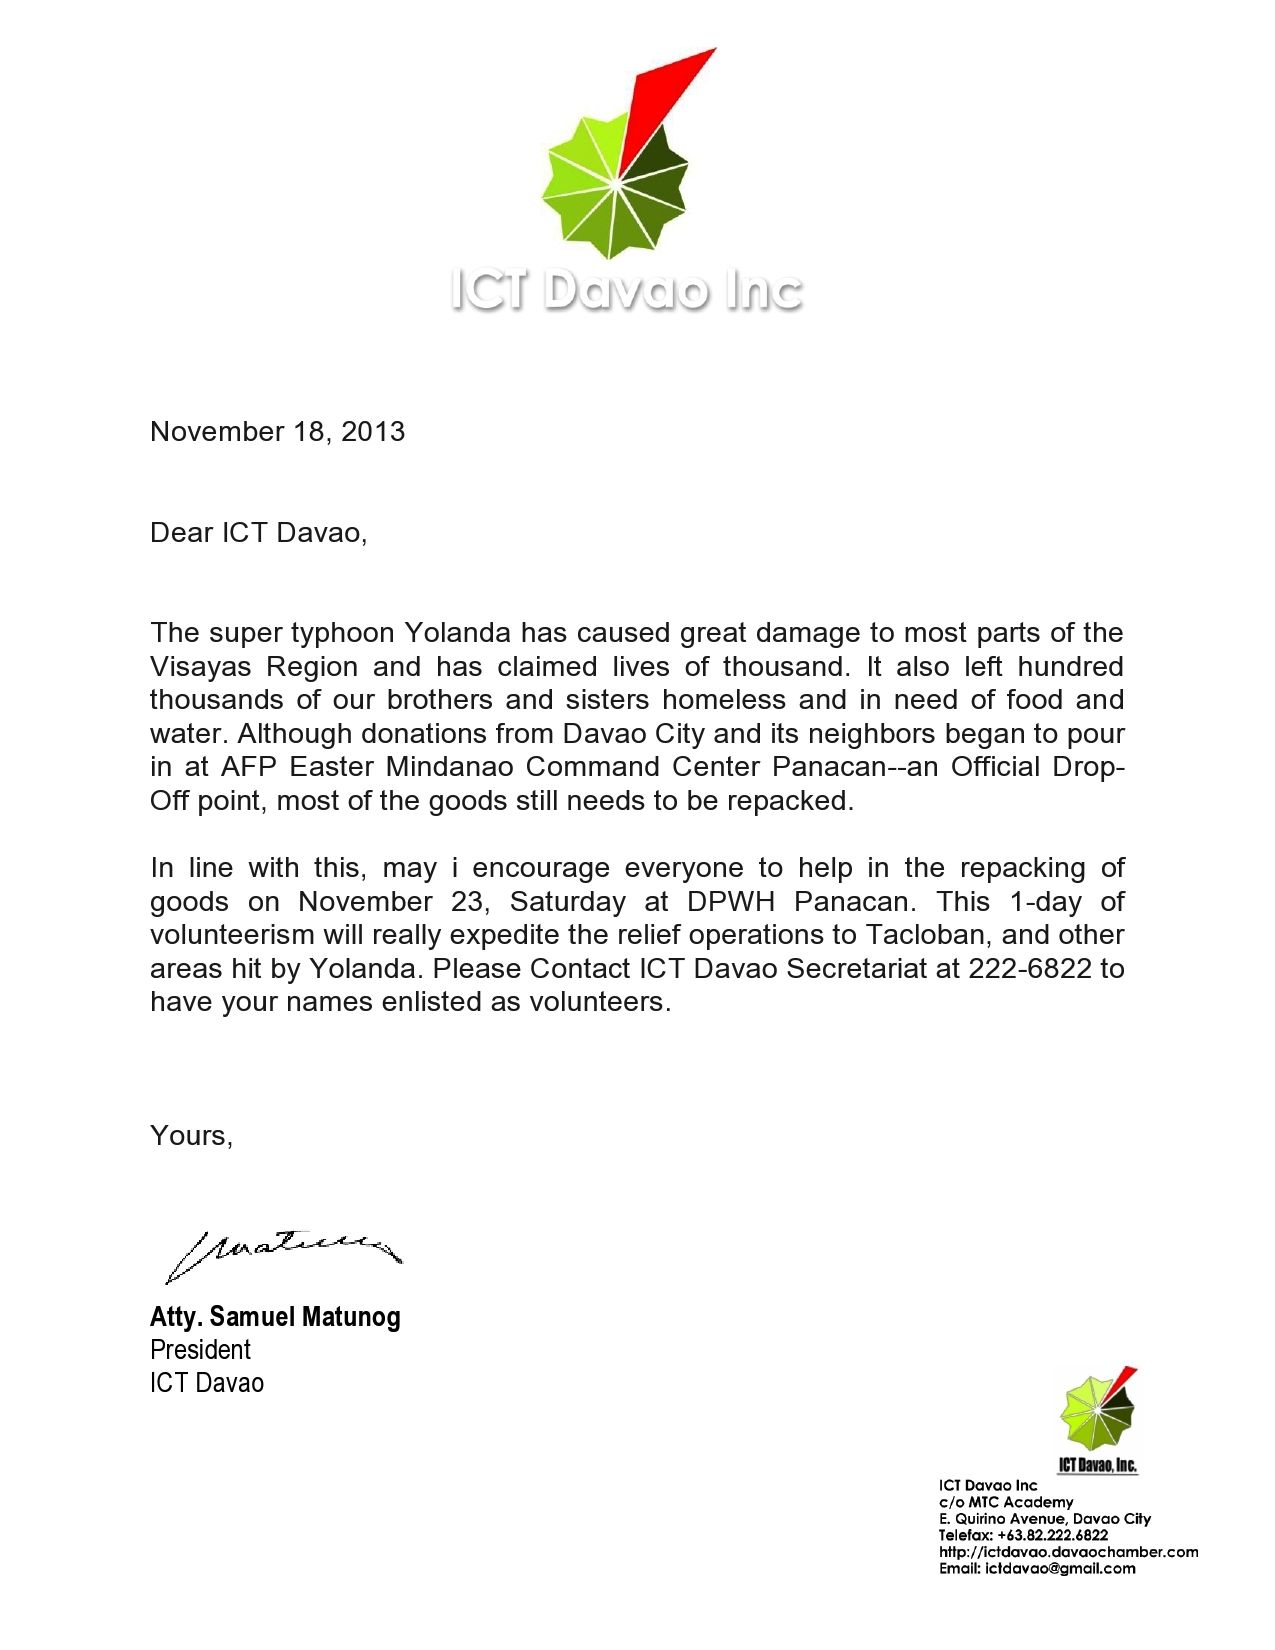 ICTDavao Volunteer WorkVolunteer Letter Template Application ...